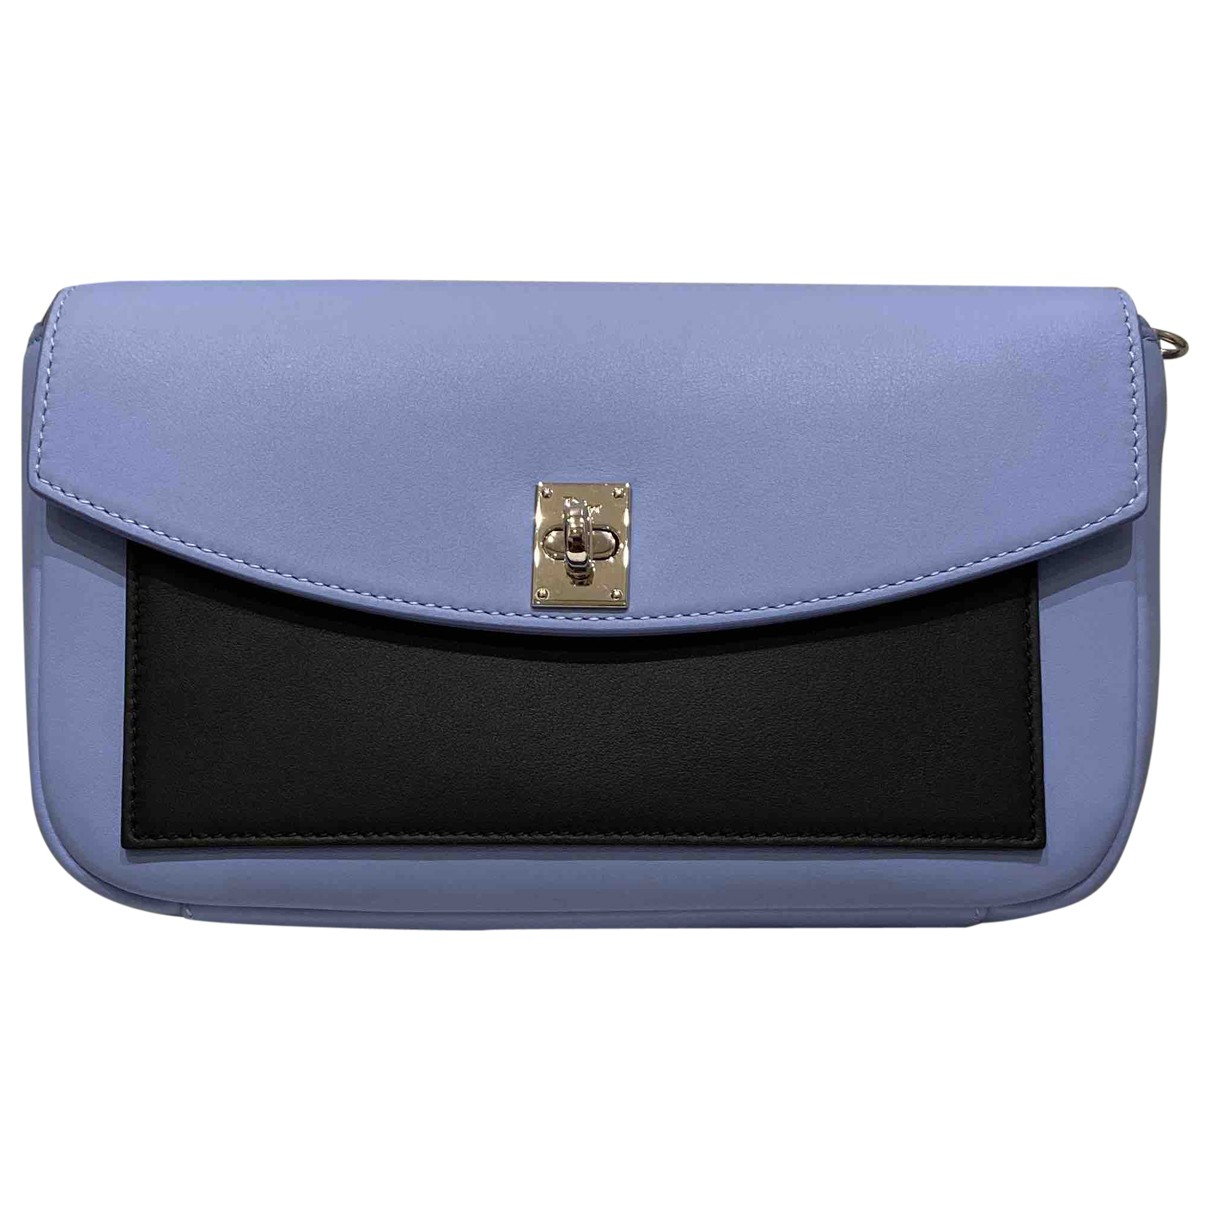 Dior \N Blue Leather Clutch bag for Women \N